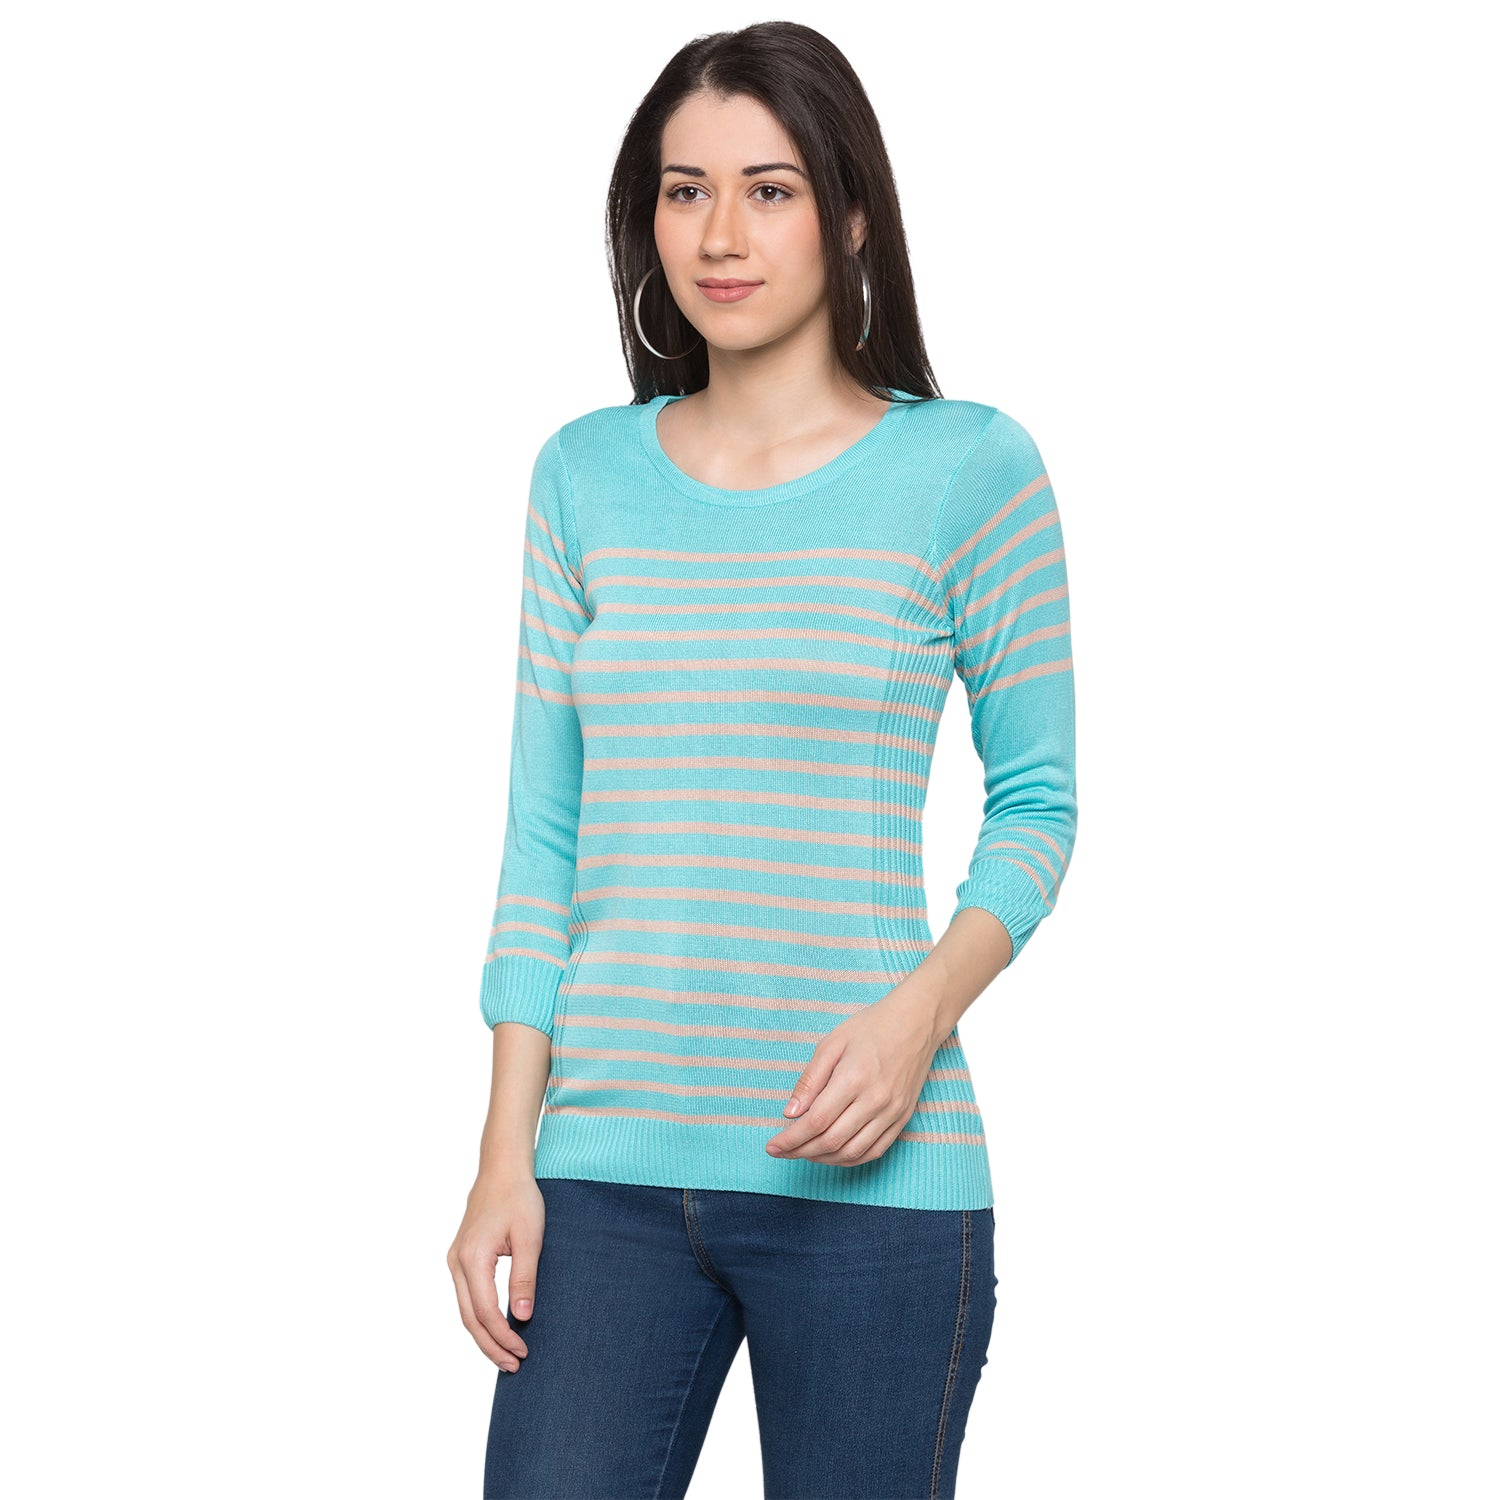 Globus Blue Striped Top2